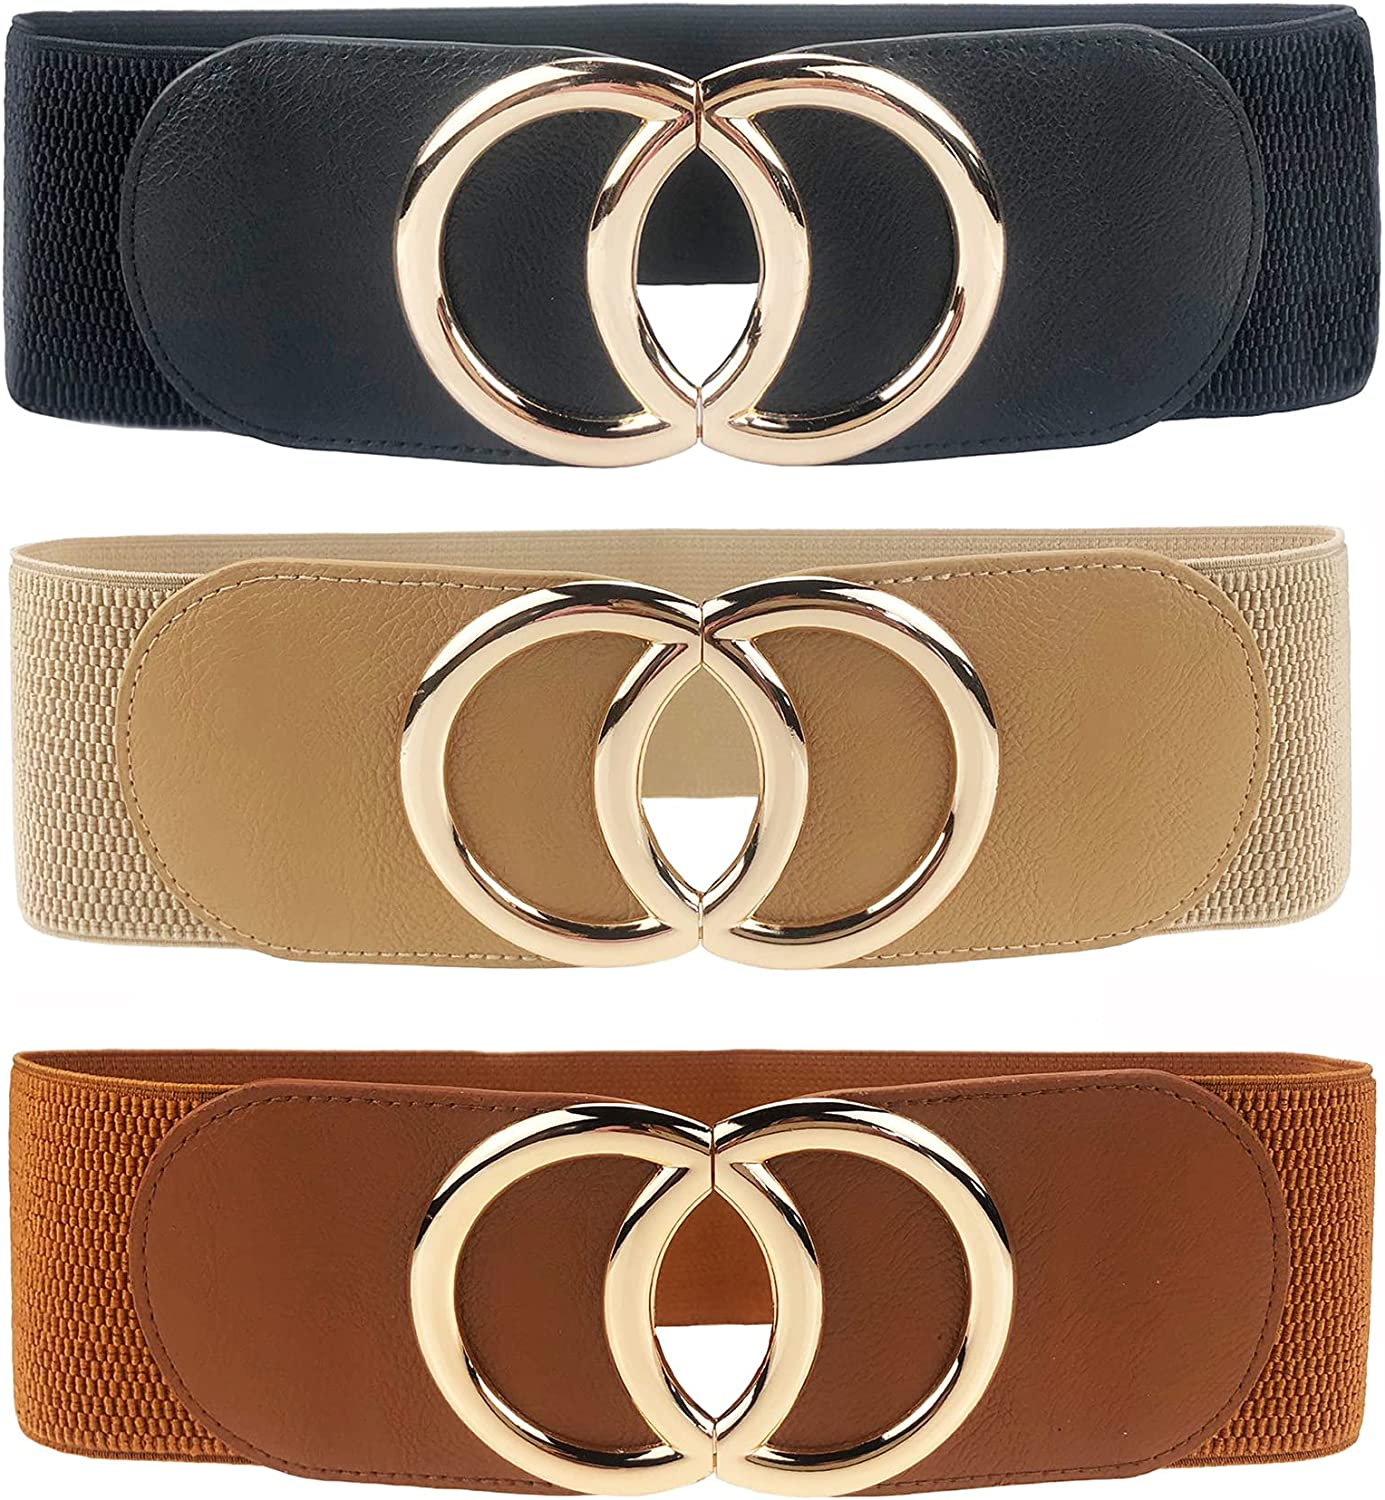 Swtddy Women's OFFer Elastic Recommended Wide Stretchy Cinch Waist Waistband Belt